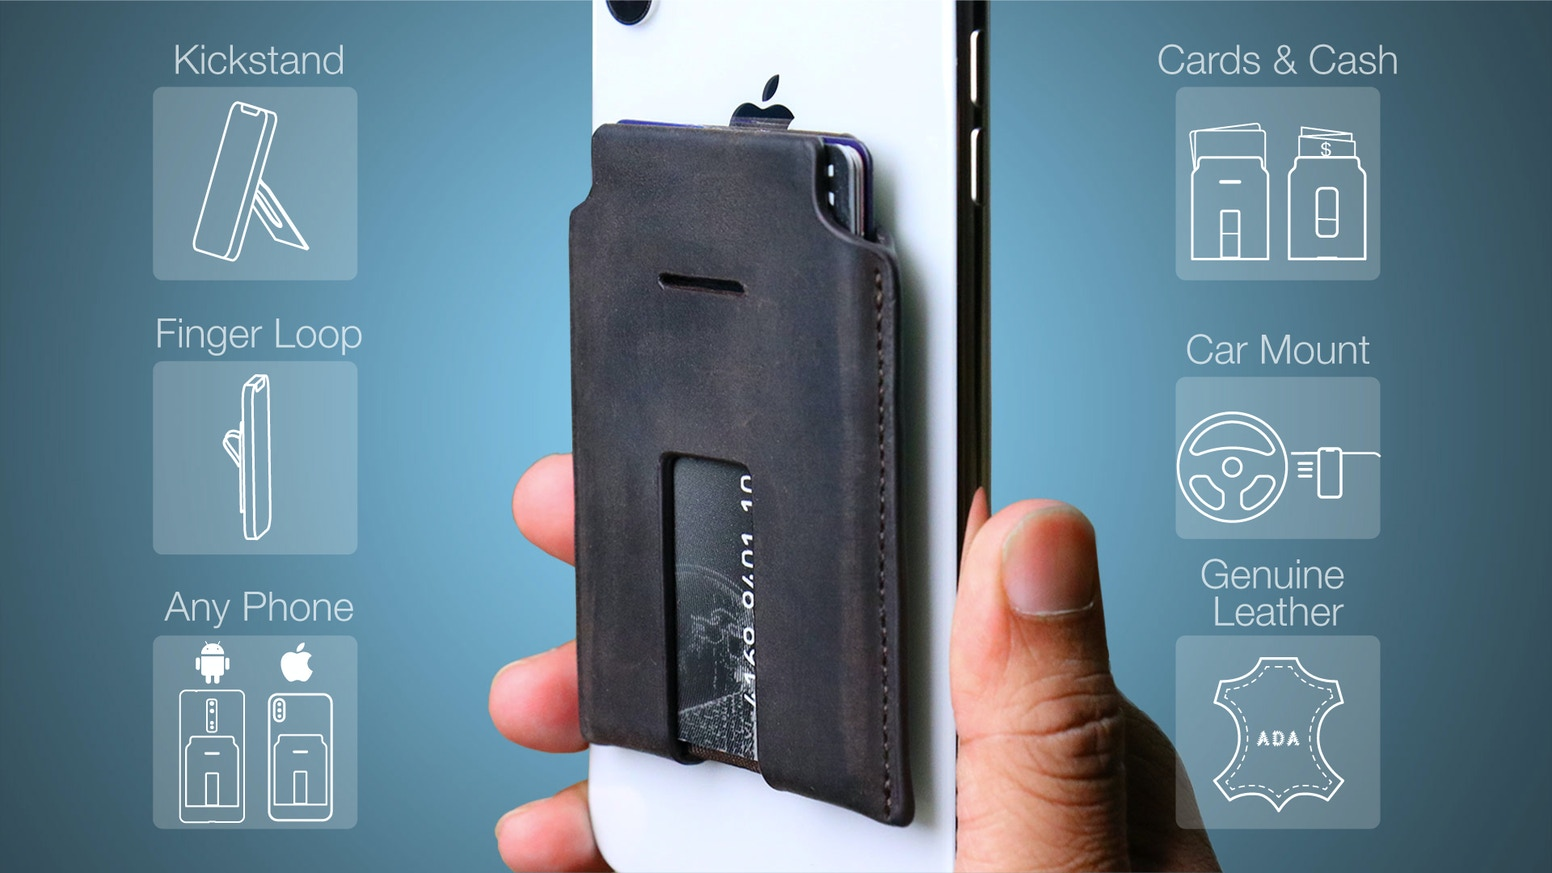 Your phone and wallet become one. Magnetically attaches, kickstands, and mounts to your car.